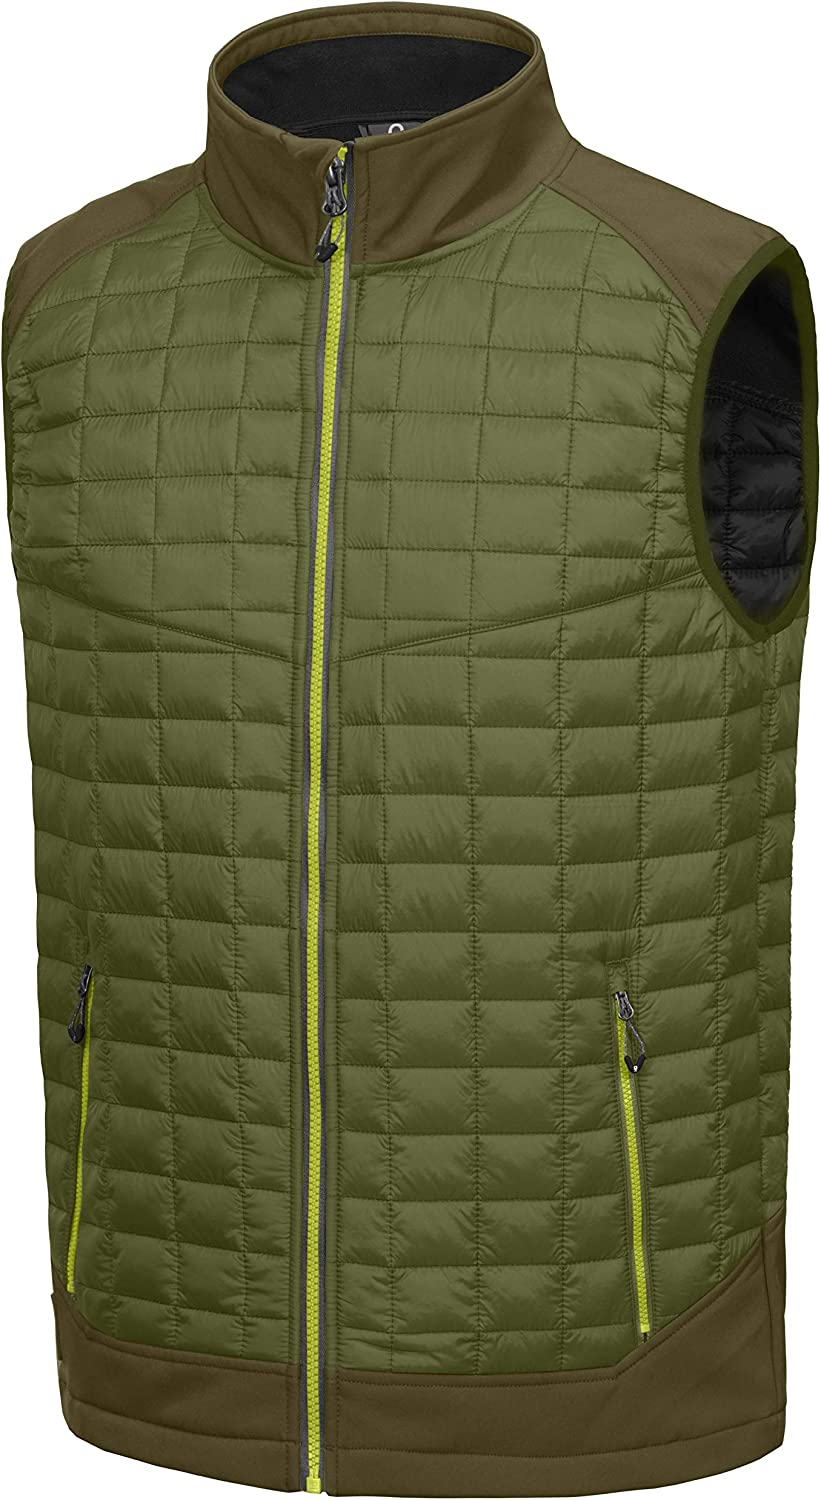 Little Donkey Andy Men's Popular shop ! Super beauty product restock quality top! is the lowest price challenge Lightweight Puffer Warm Outd Vest